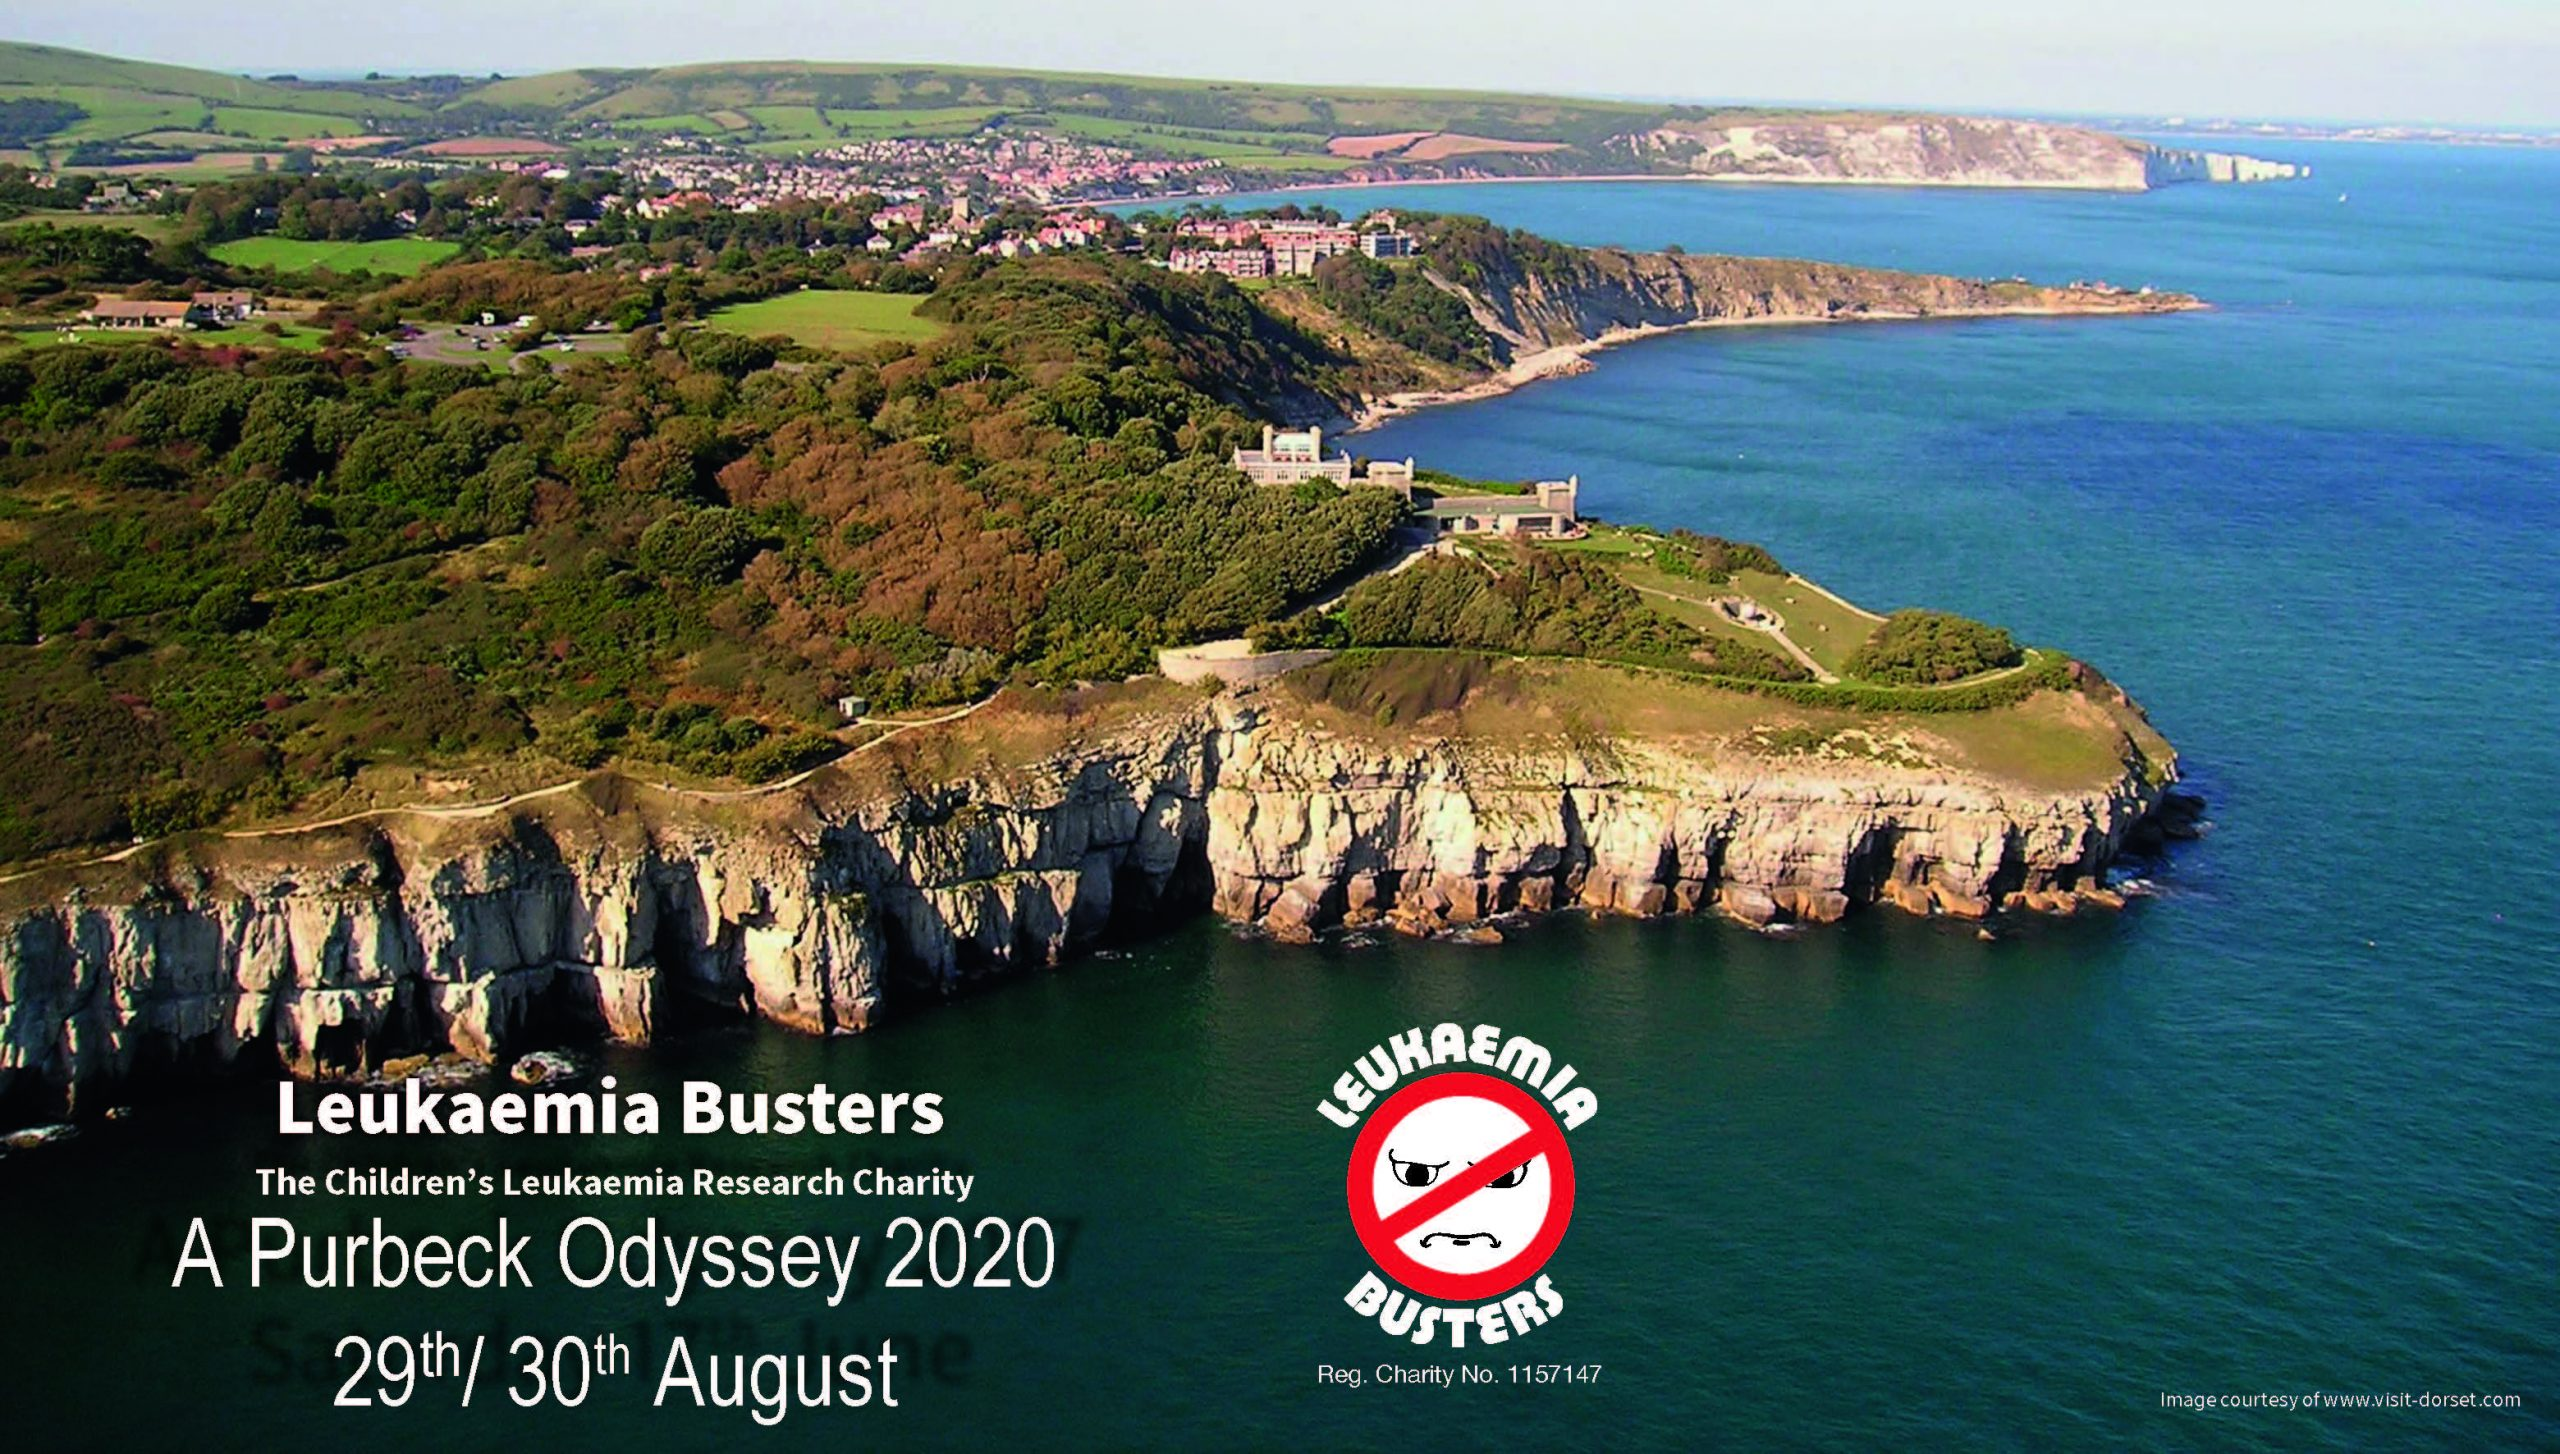 A Virtual Leukaemia Busters Purbeck Odyssey Walk